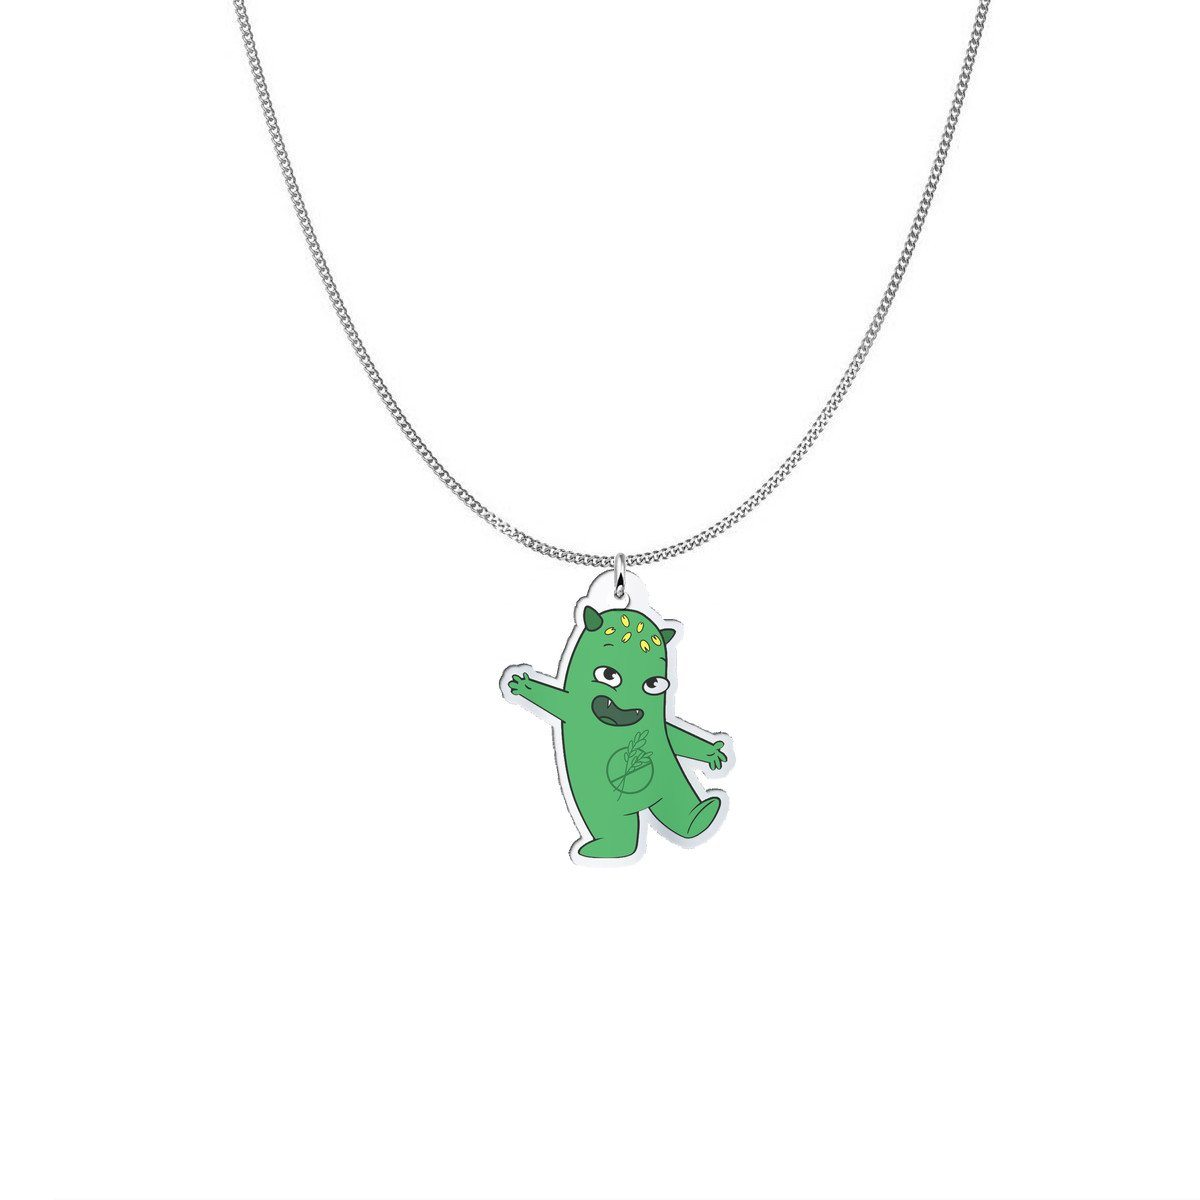 Pendant - Lutes The Celiac Disease Monster Silver Necklace